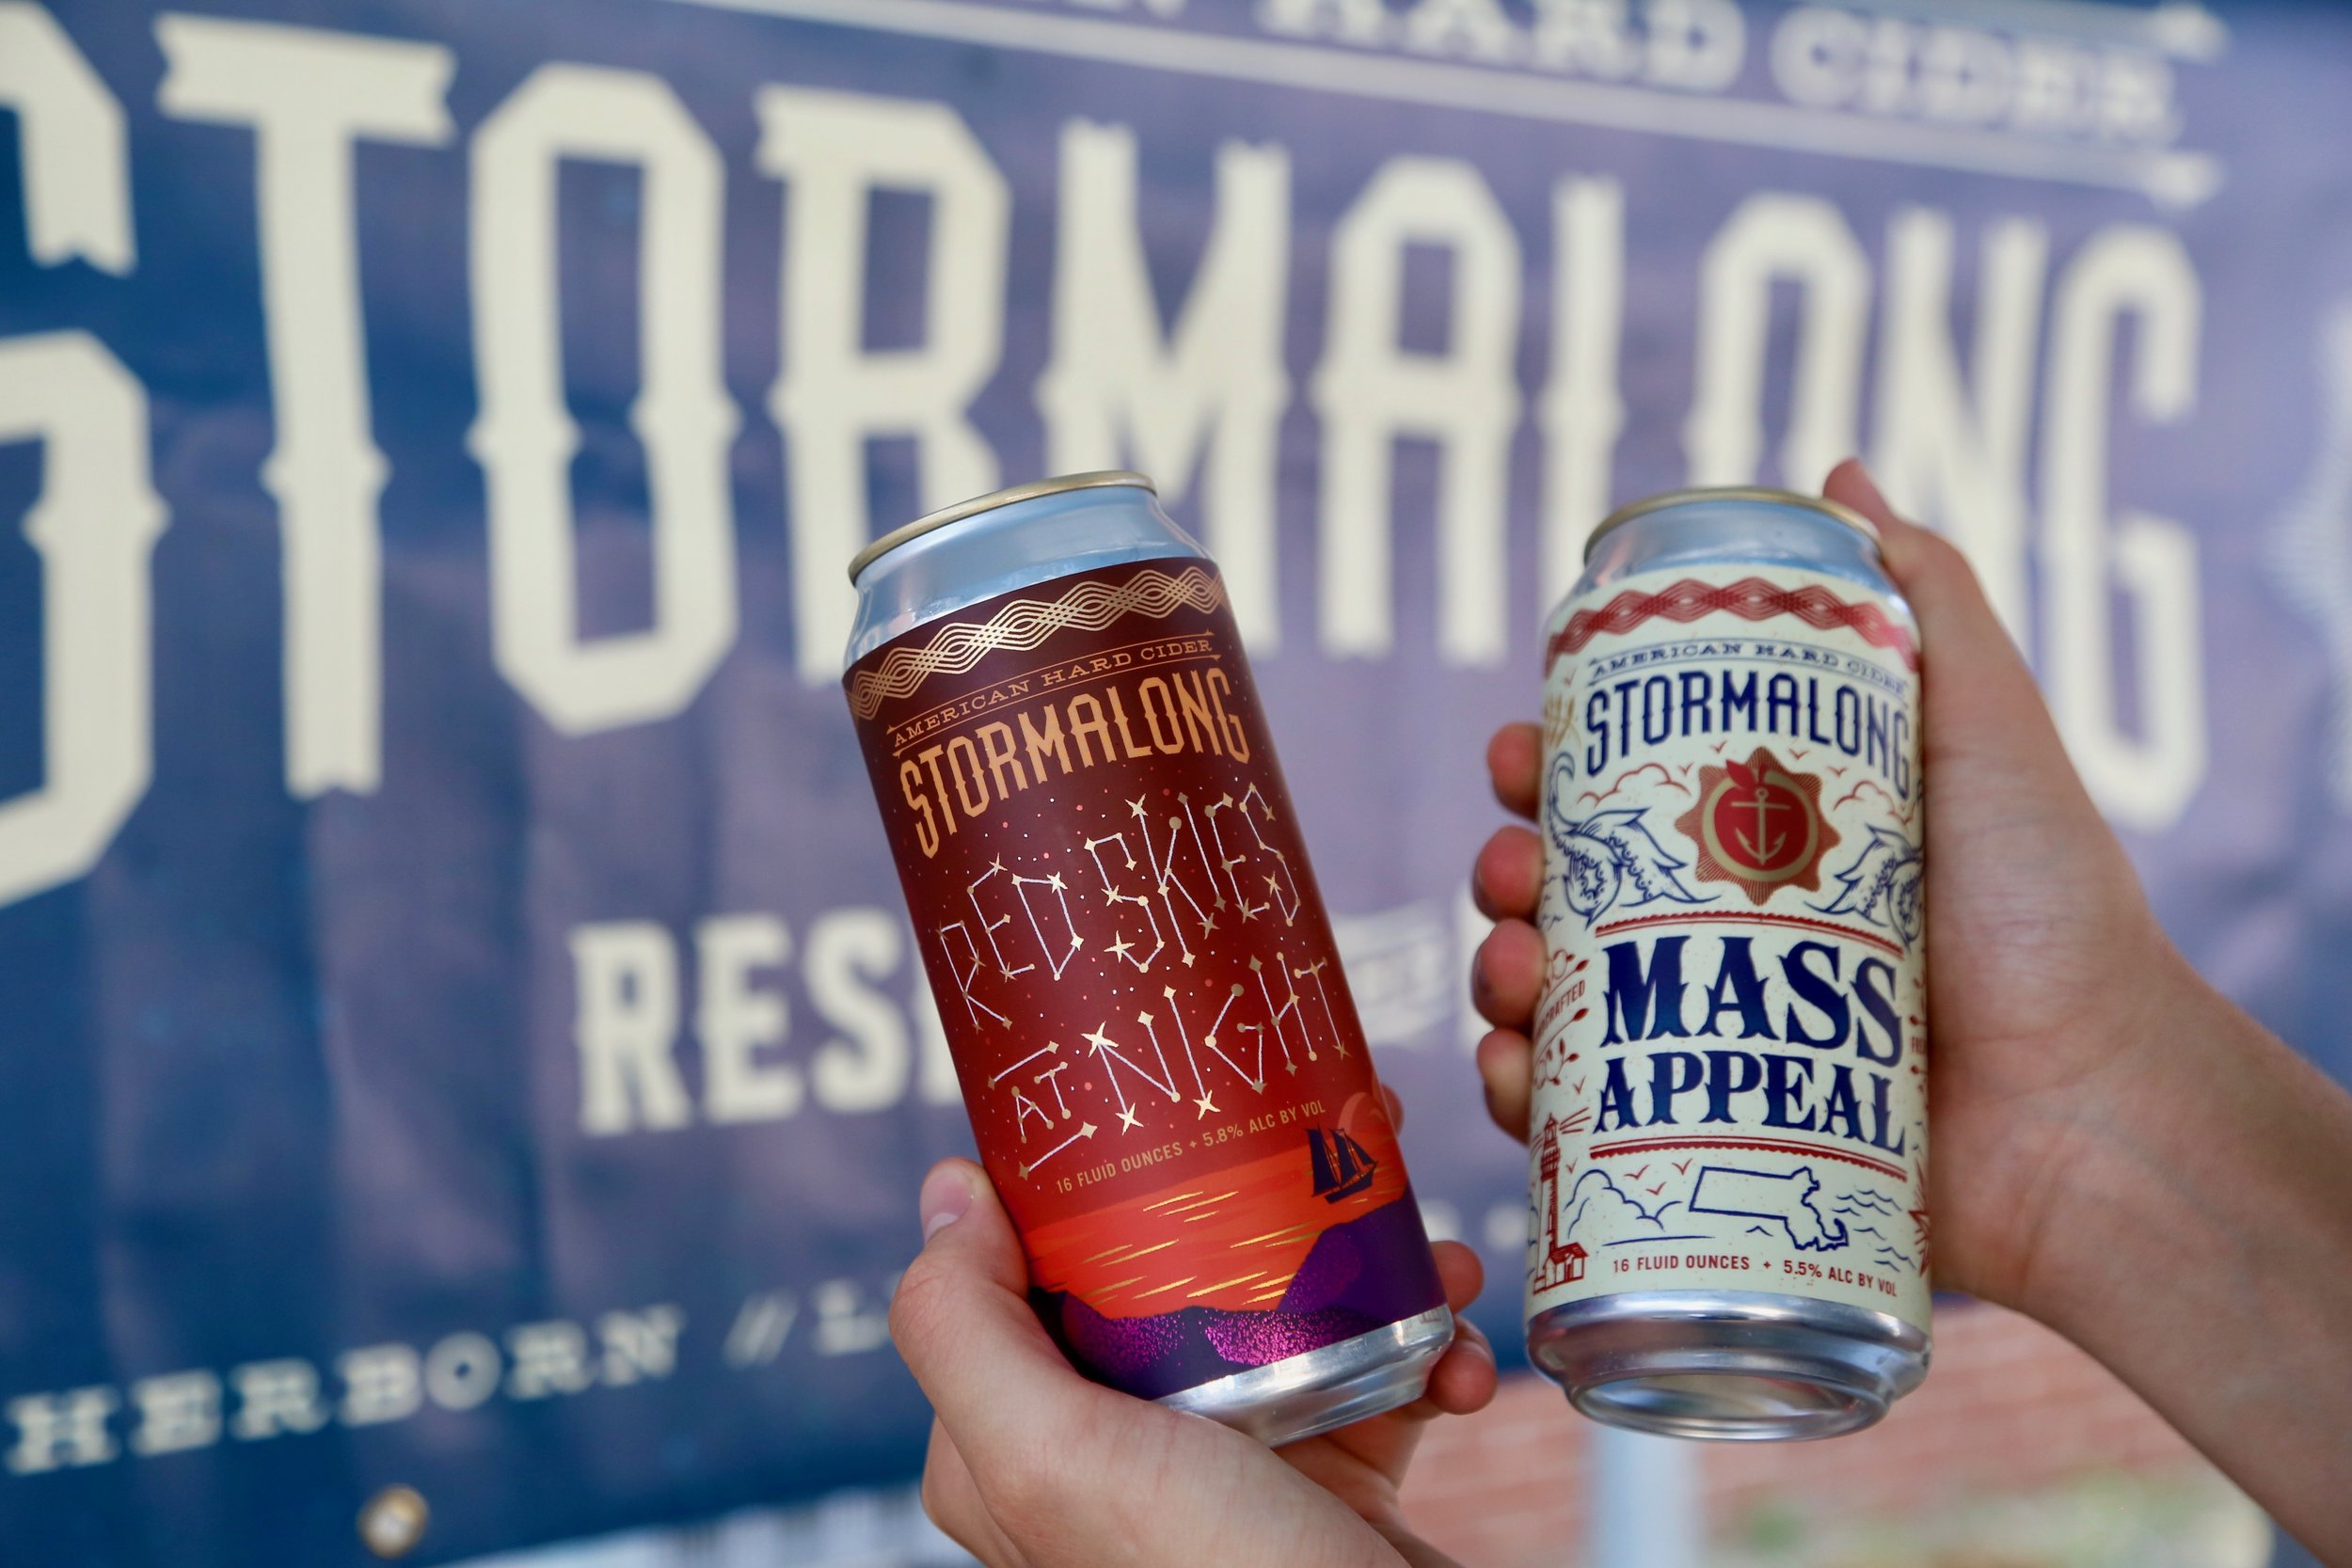 Stormalong Cider - Enjoy a nice chill cider. Try their classic flavors or stop by to see what special flavors they might be selling from week to week.